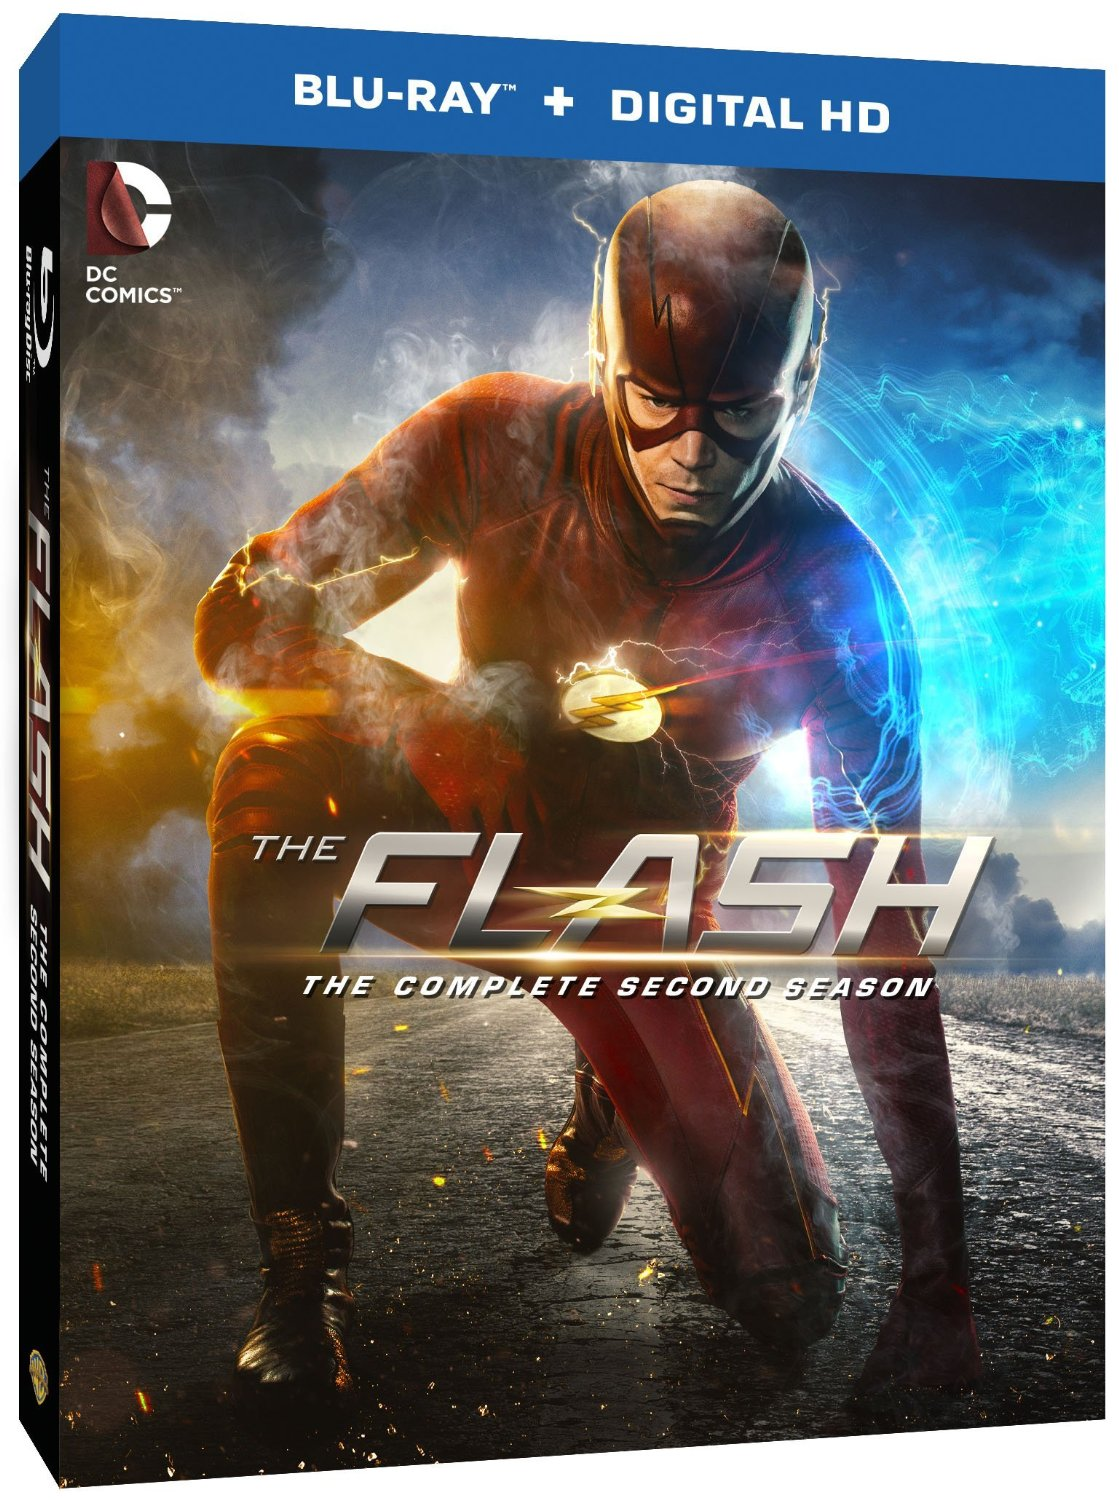 Cover Art, Release Date, And Special Features For The Flash Season 2 Blu-Ray